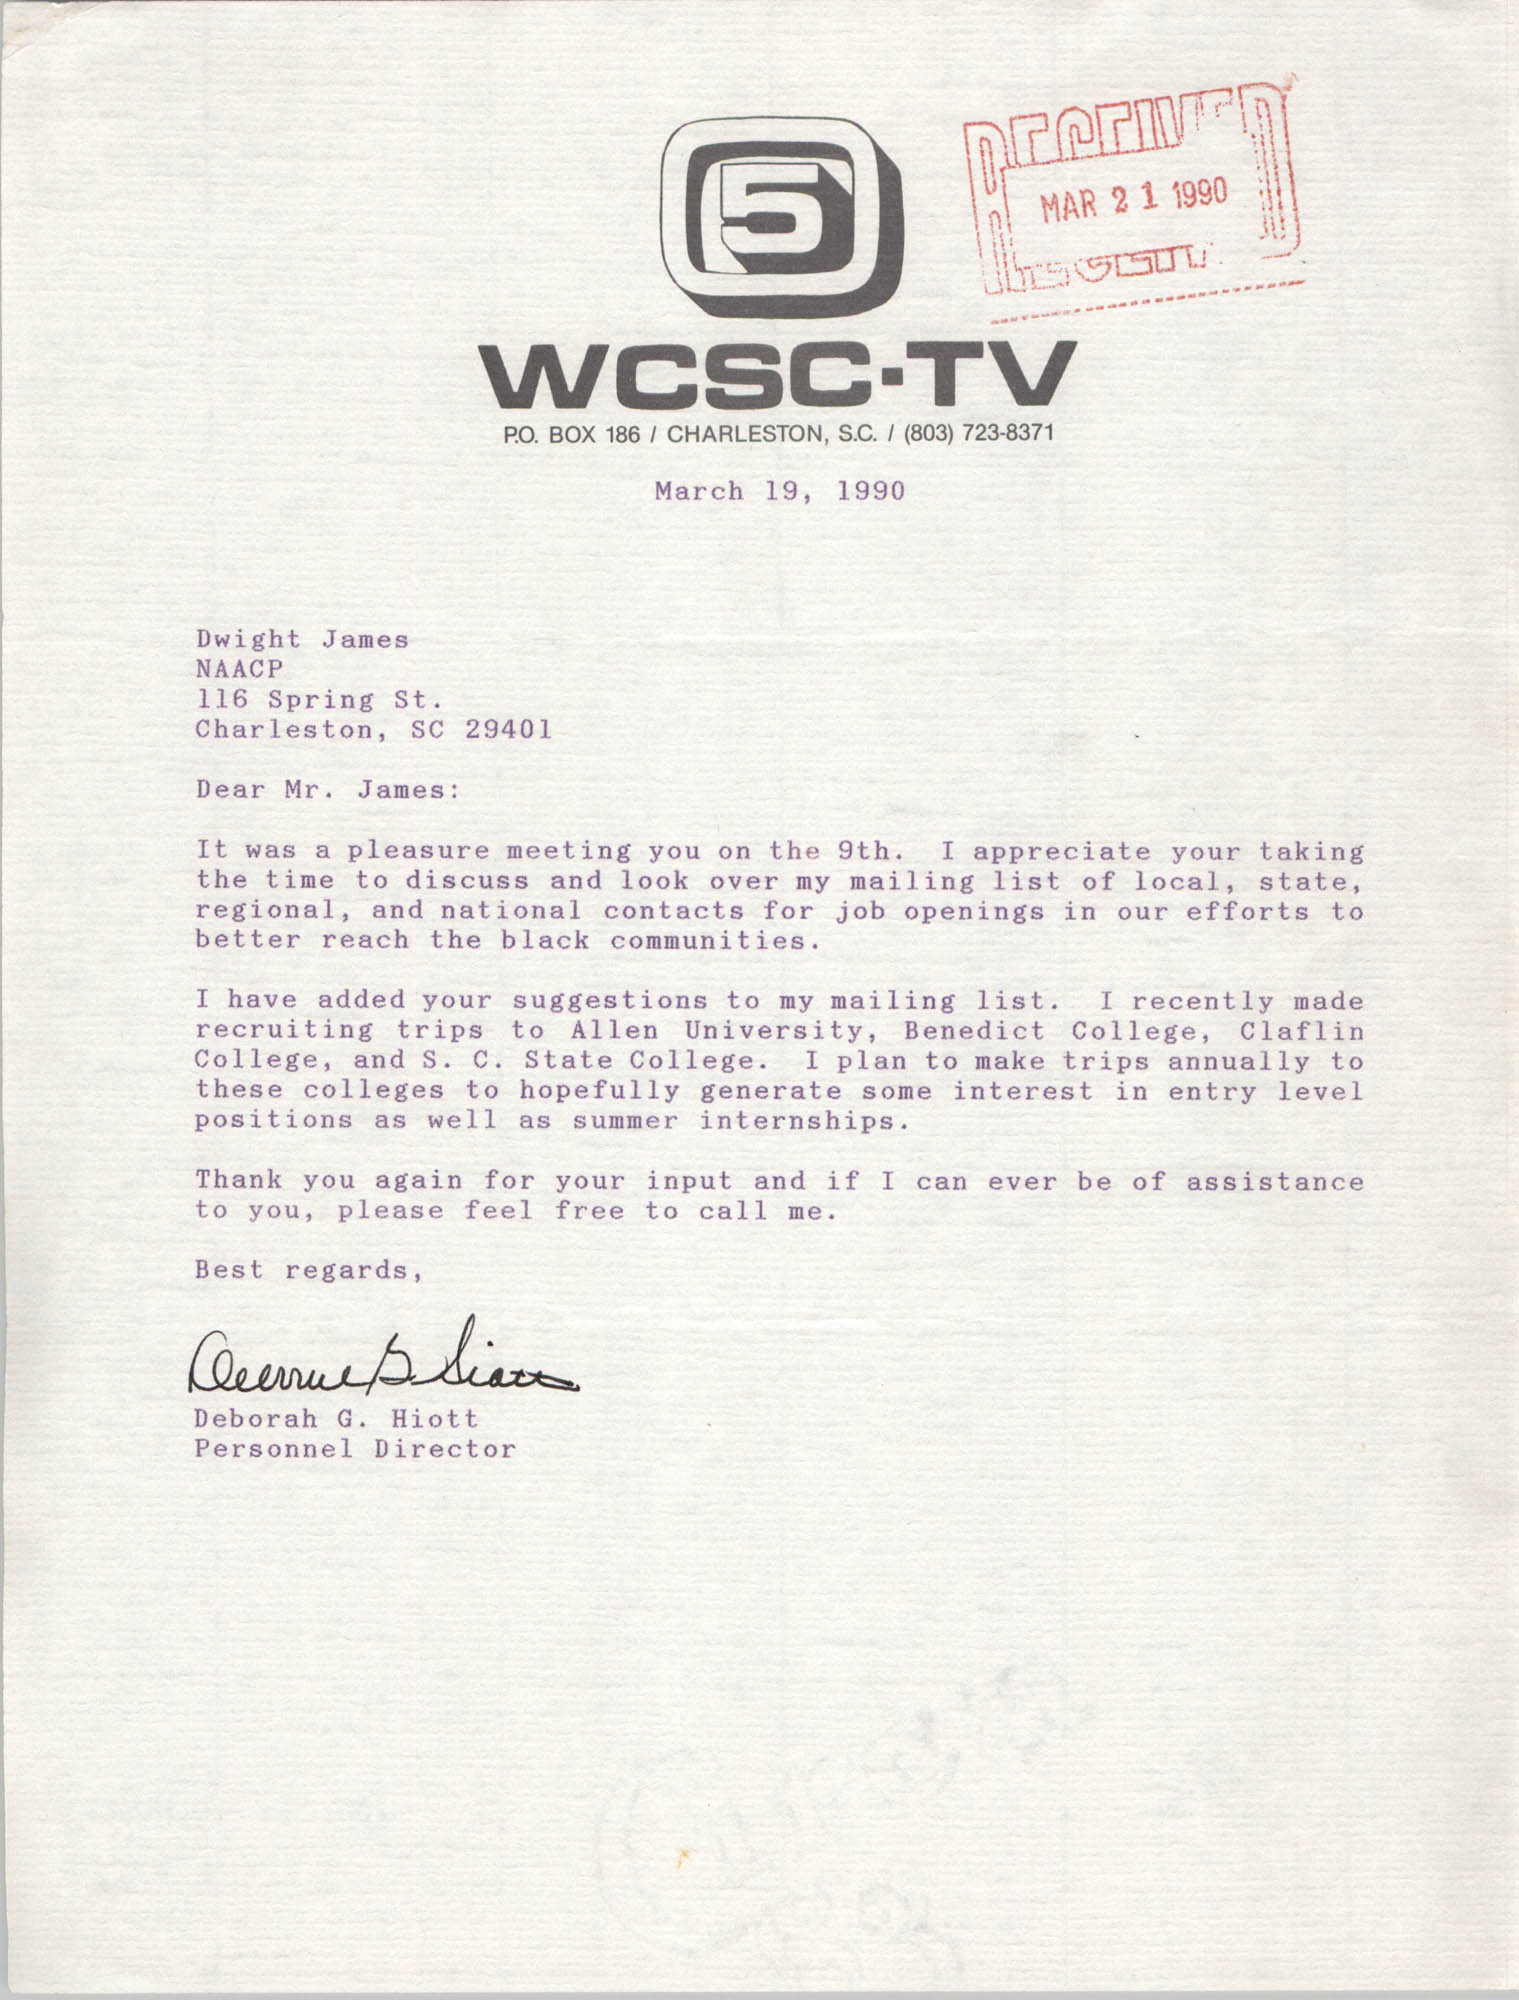 Letter from Deborah G. Hiott to Dwight James, March 19, 1990